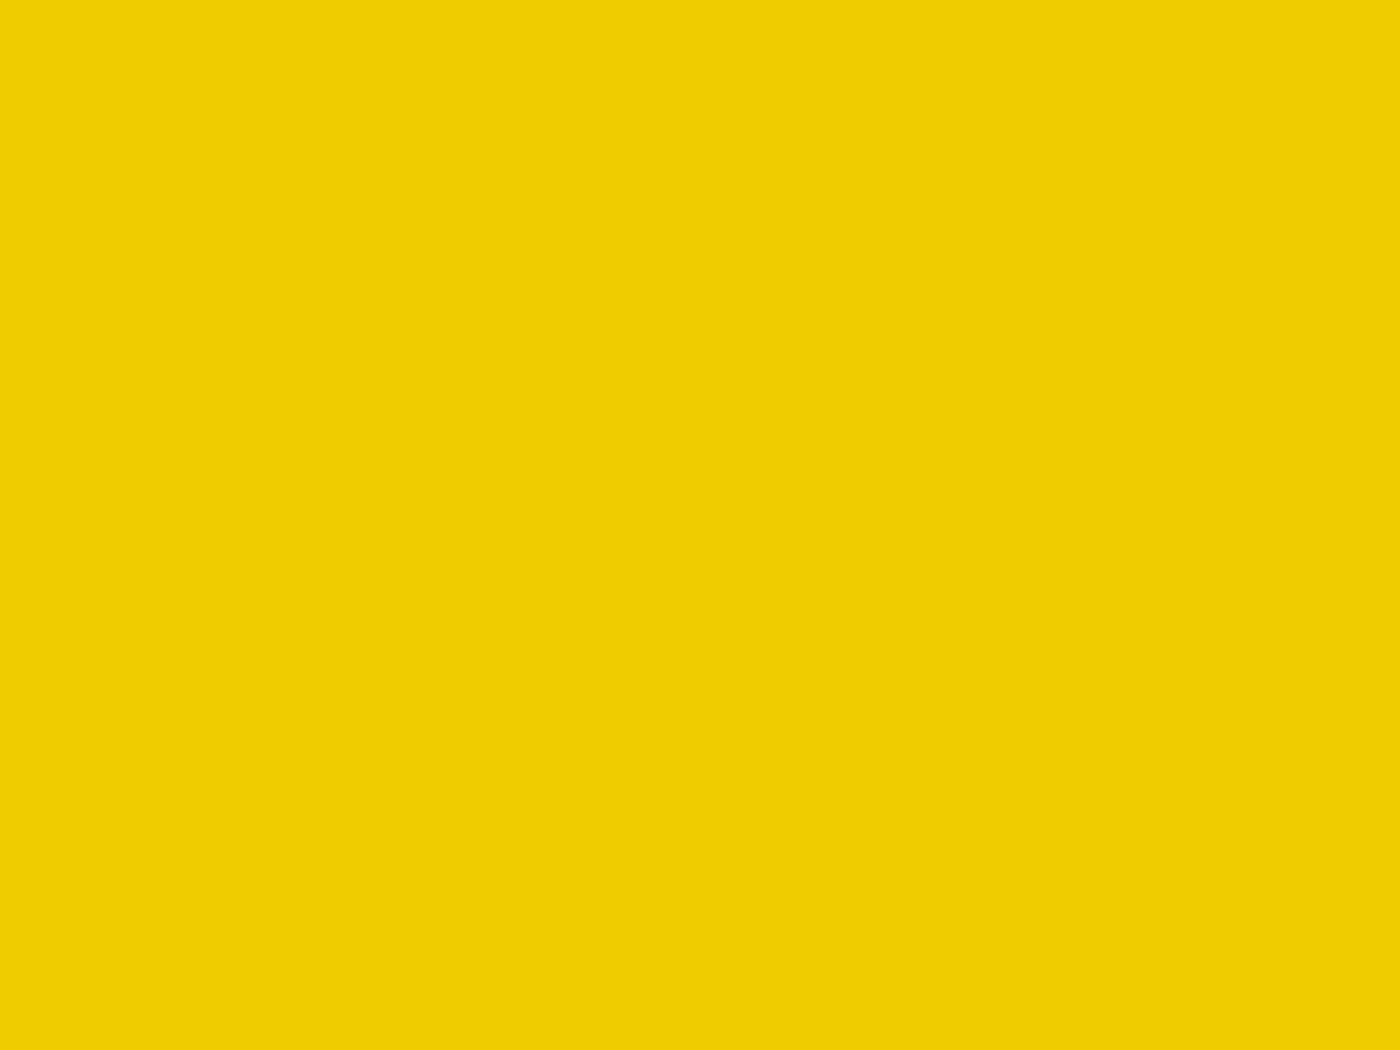 1400x1050 Yellow Munsell Solid Color Background